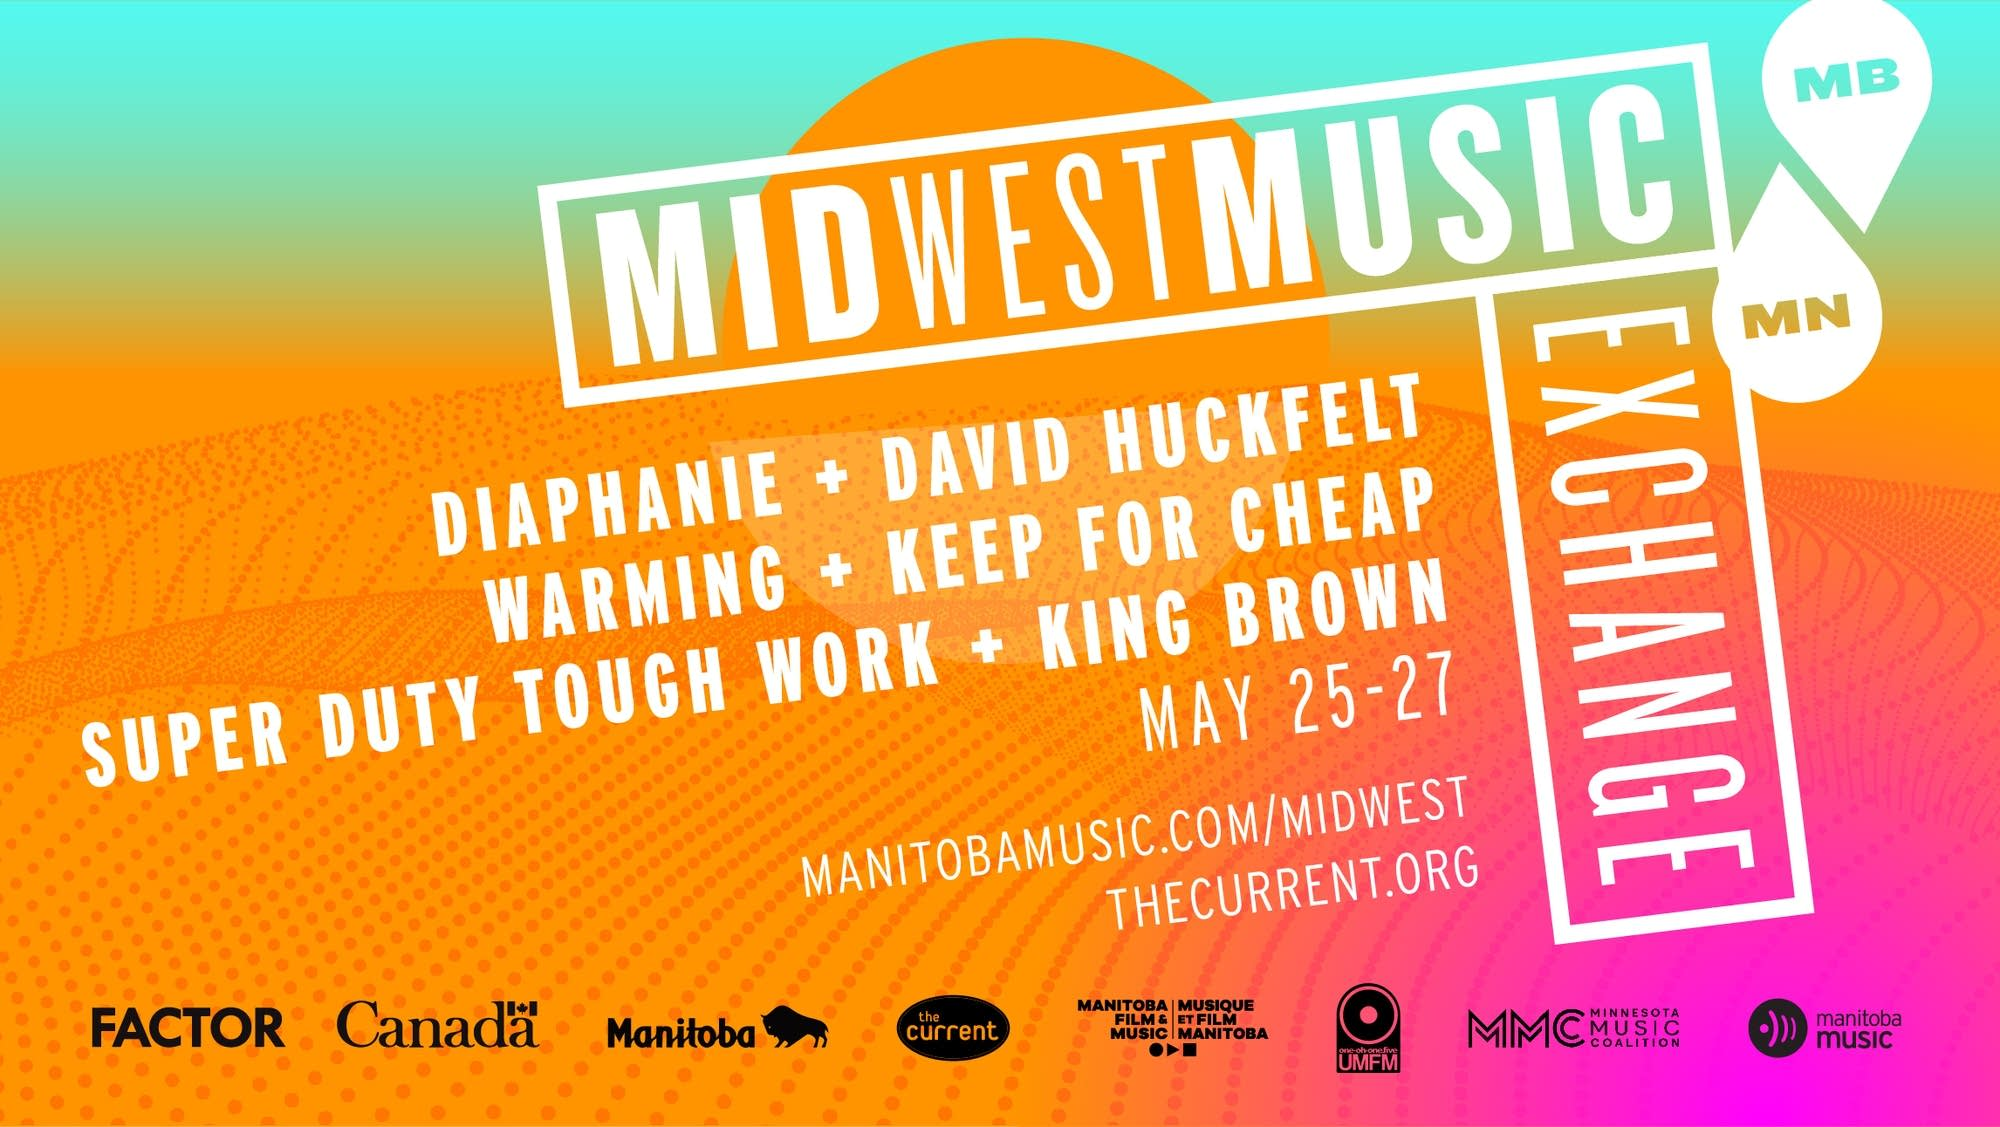 Midwest Music Exchange 2021